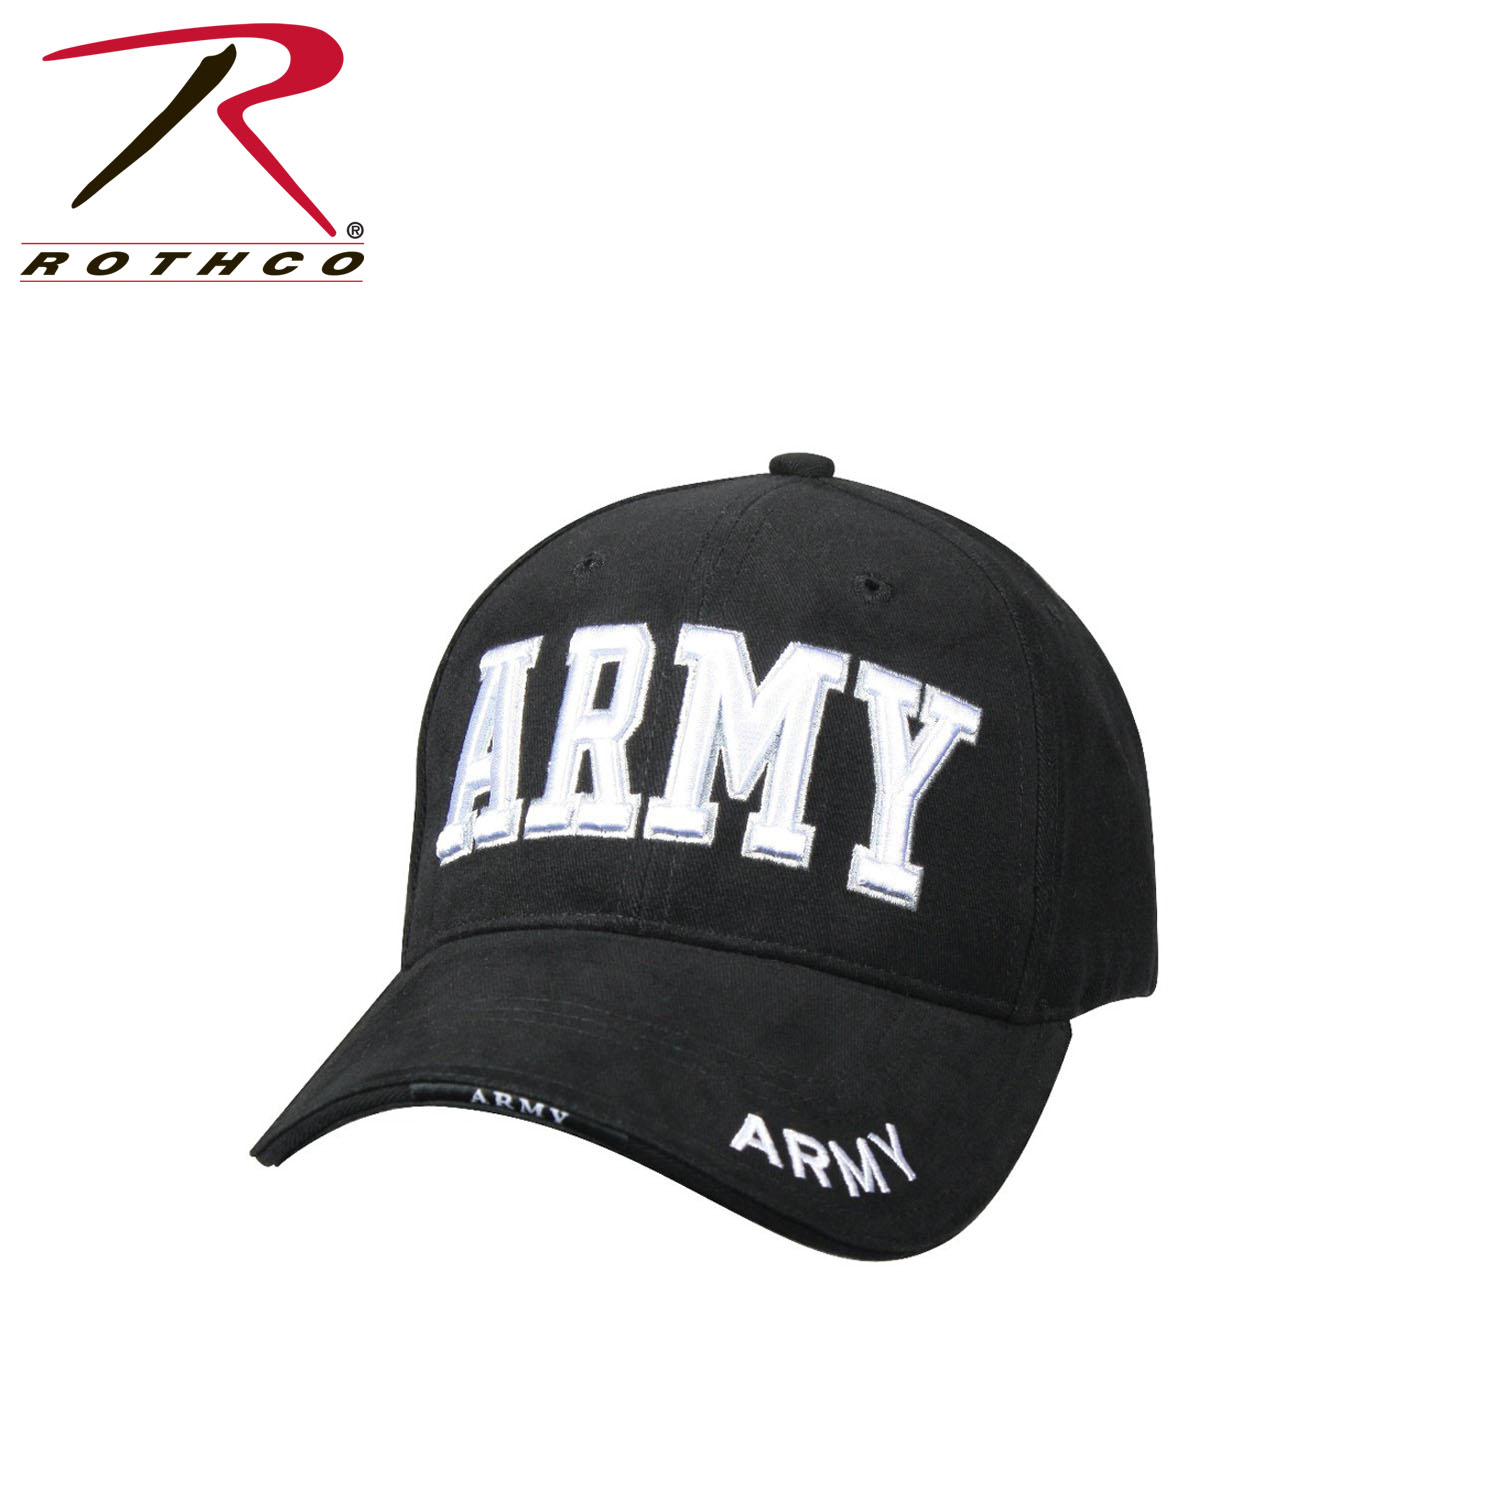 Details about Rothco 9385   9488   9485 Deluxe Army Embroidered Low Profile  Insignia Cap 05f14d13e819